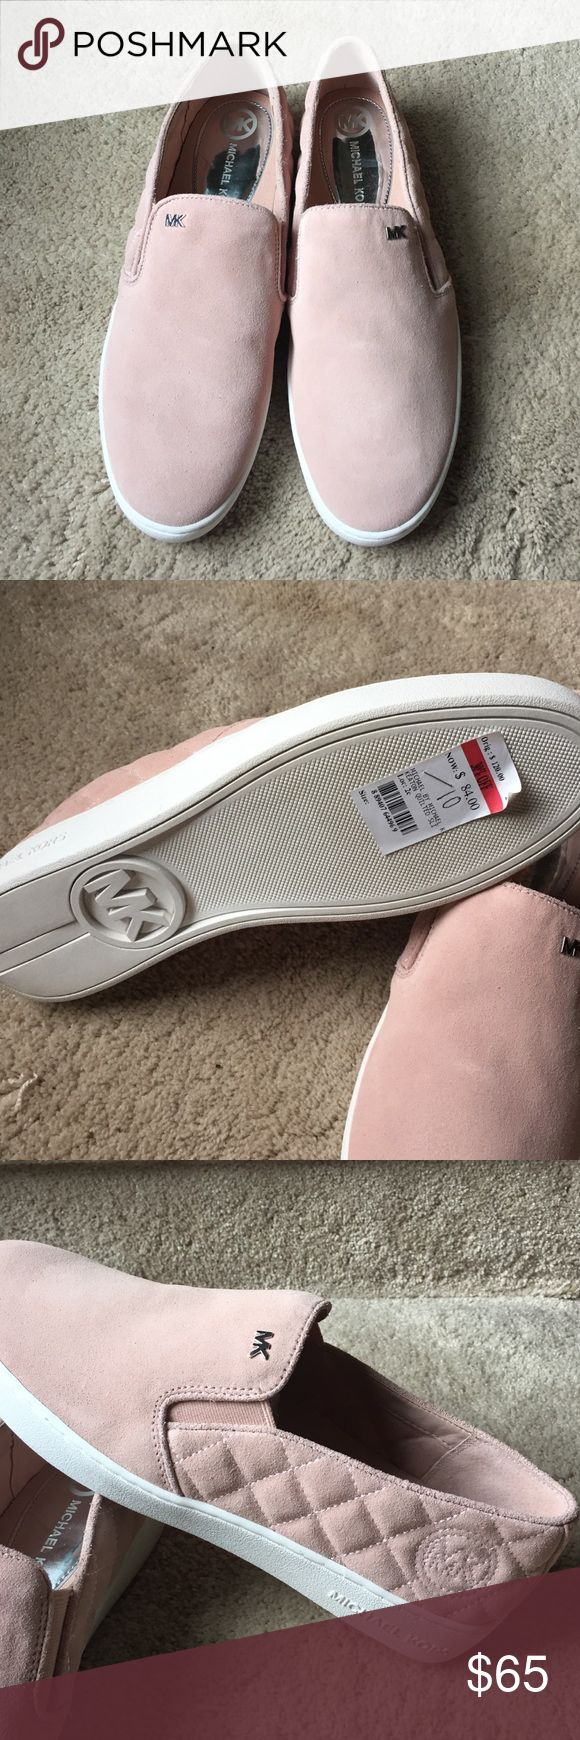 Authentic Michael Kors shoes NWT! Michael Kors Keaton quilted suede skate shoe. Soft pink! Super cute! Michael Kors Shoes Sneakers